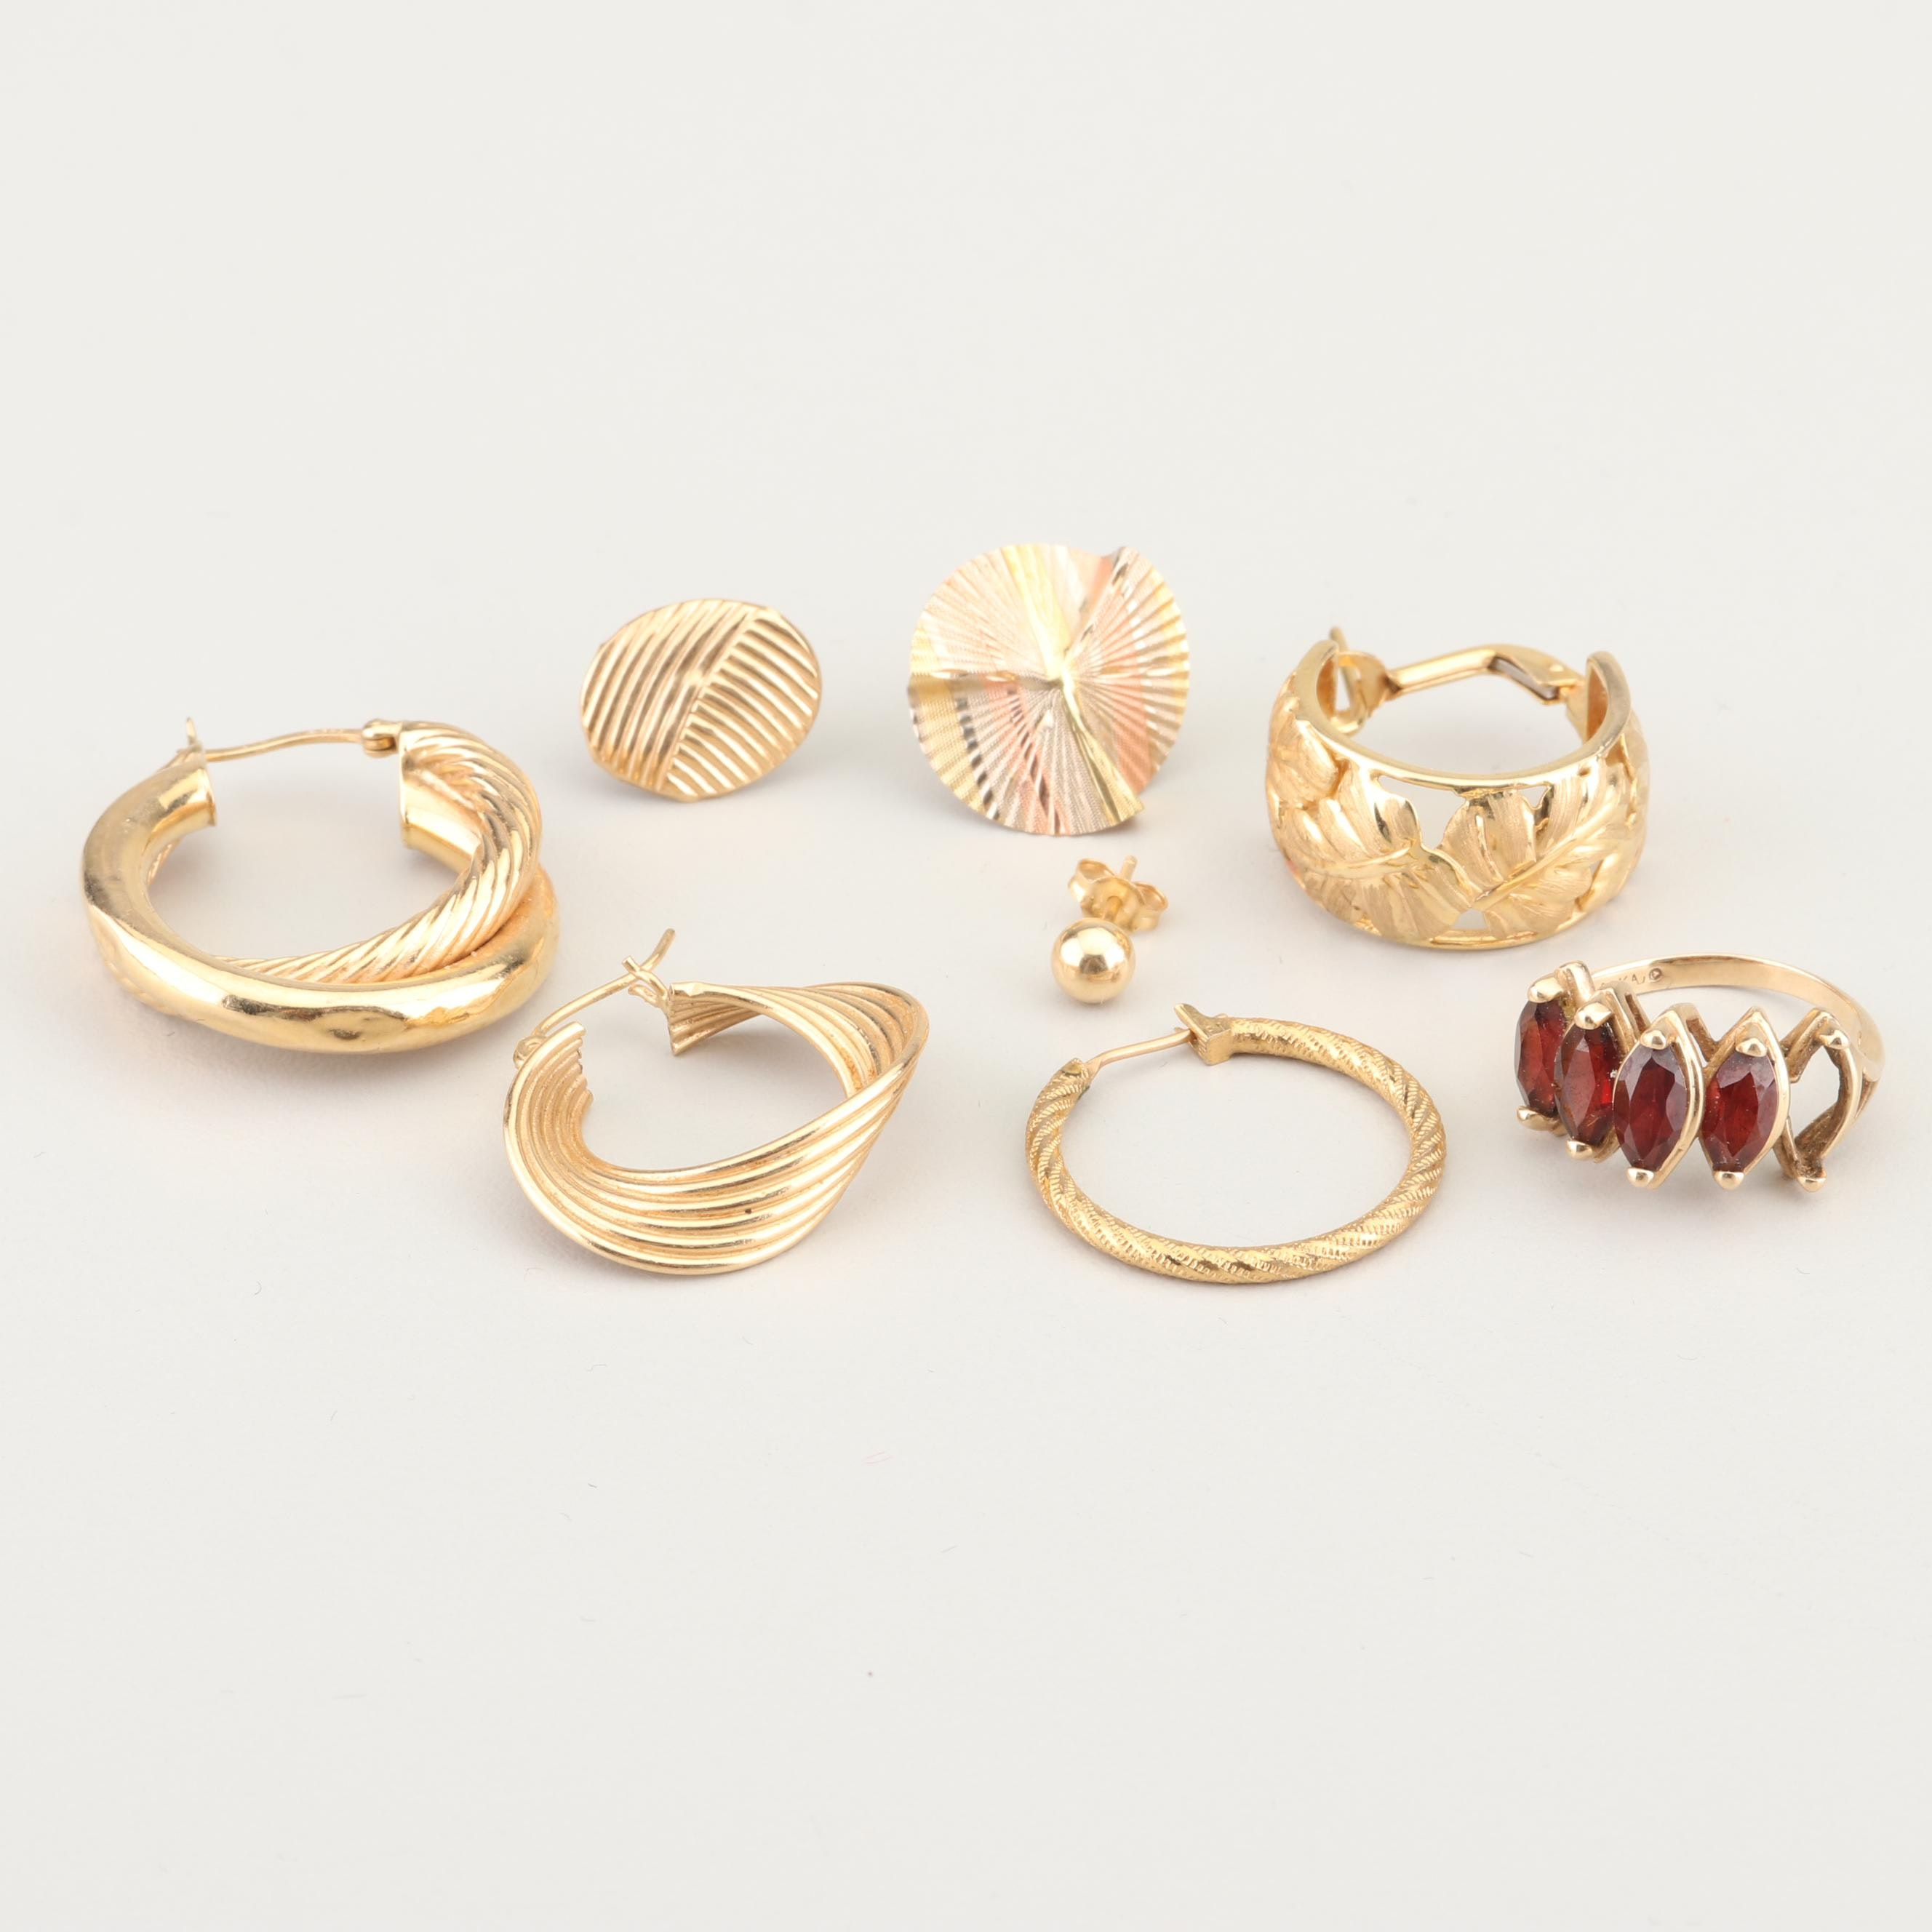 14K Yellow Gold and Gold Tone Scrap Collection